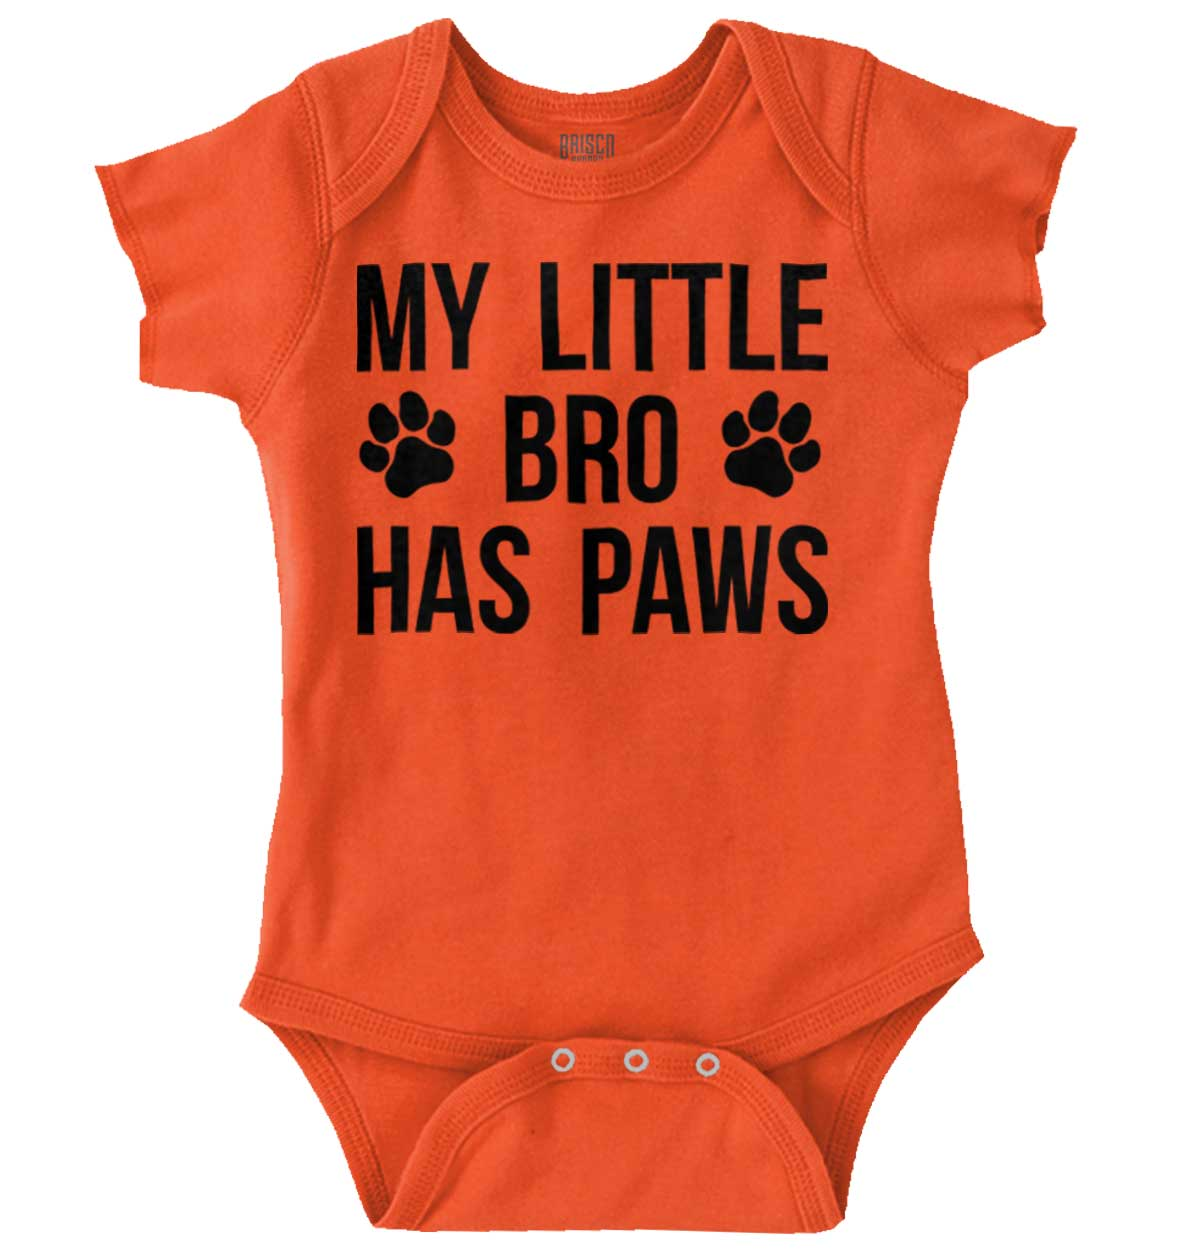 MY BIG BROTHER Barks Baby Bodysuit  baby coming home outfit  Gift For Baby  shower gift  Unisex Baby Clothing new mom gift Dog Sibling Tee